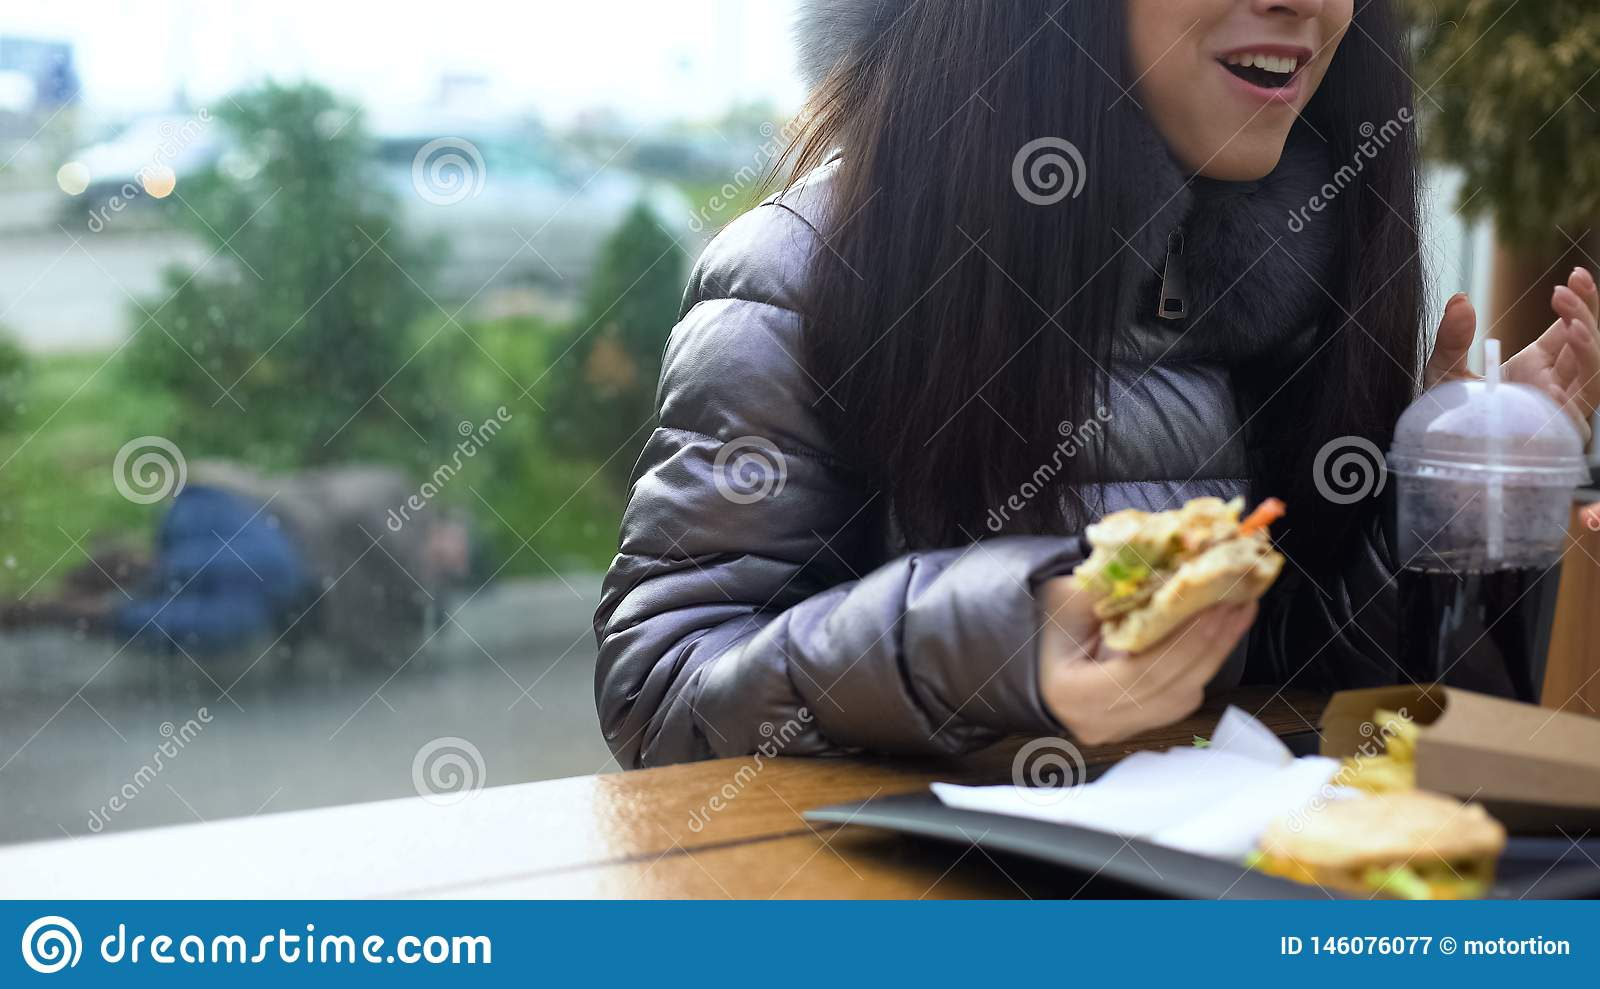 Happy female holding sandwich having dinner cafe, homeless person lying outdoor